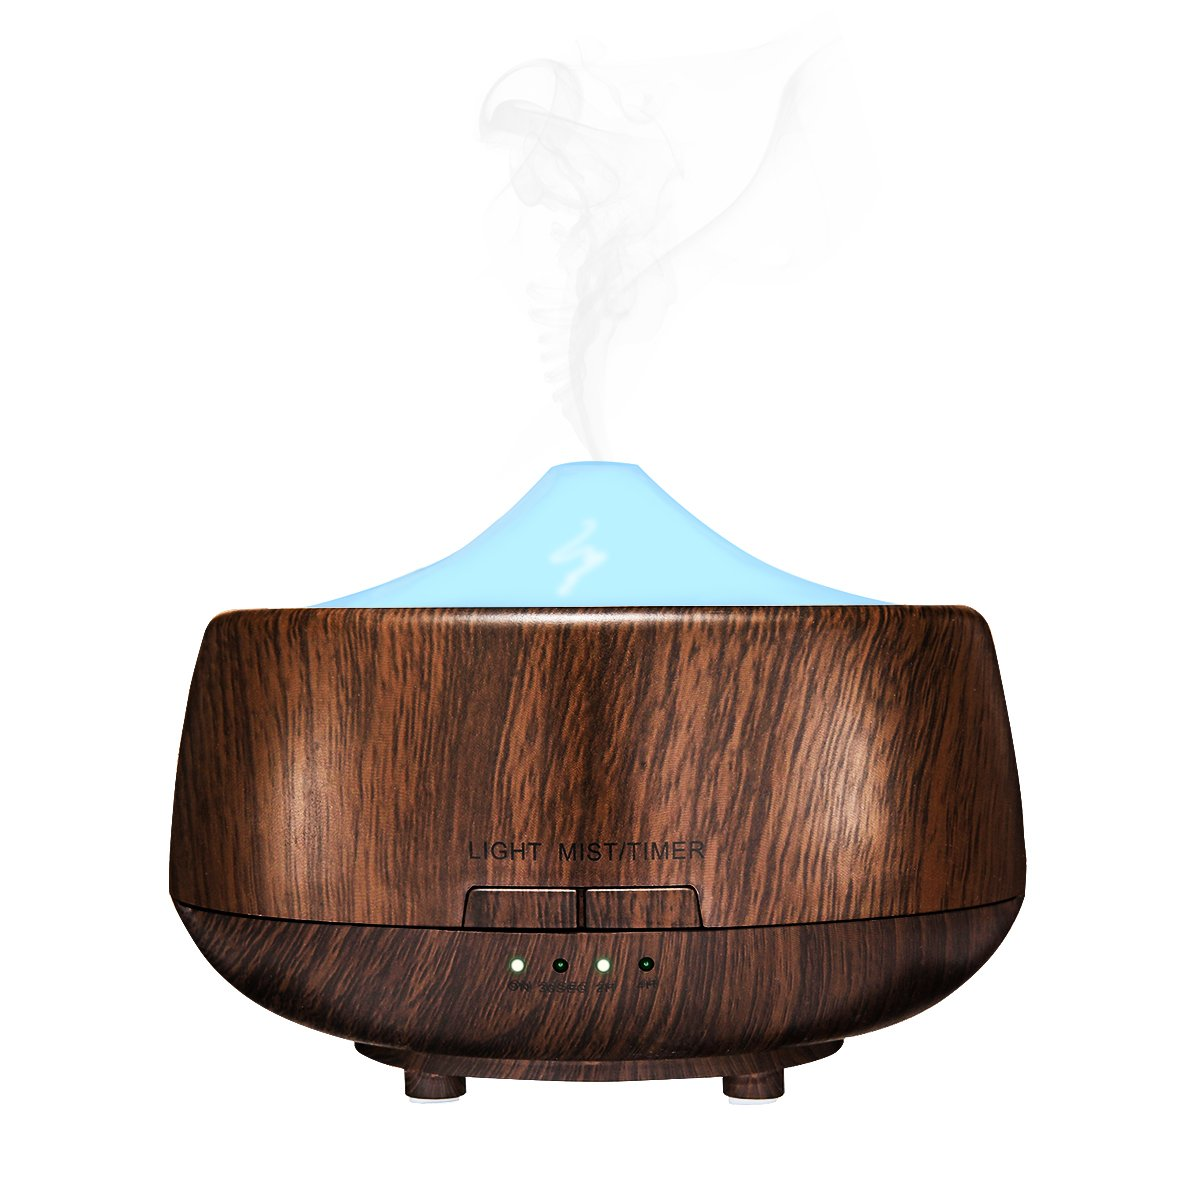 MIGICSHOW Ultrasonic Cool Mist Humidifier Review